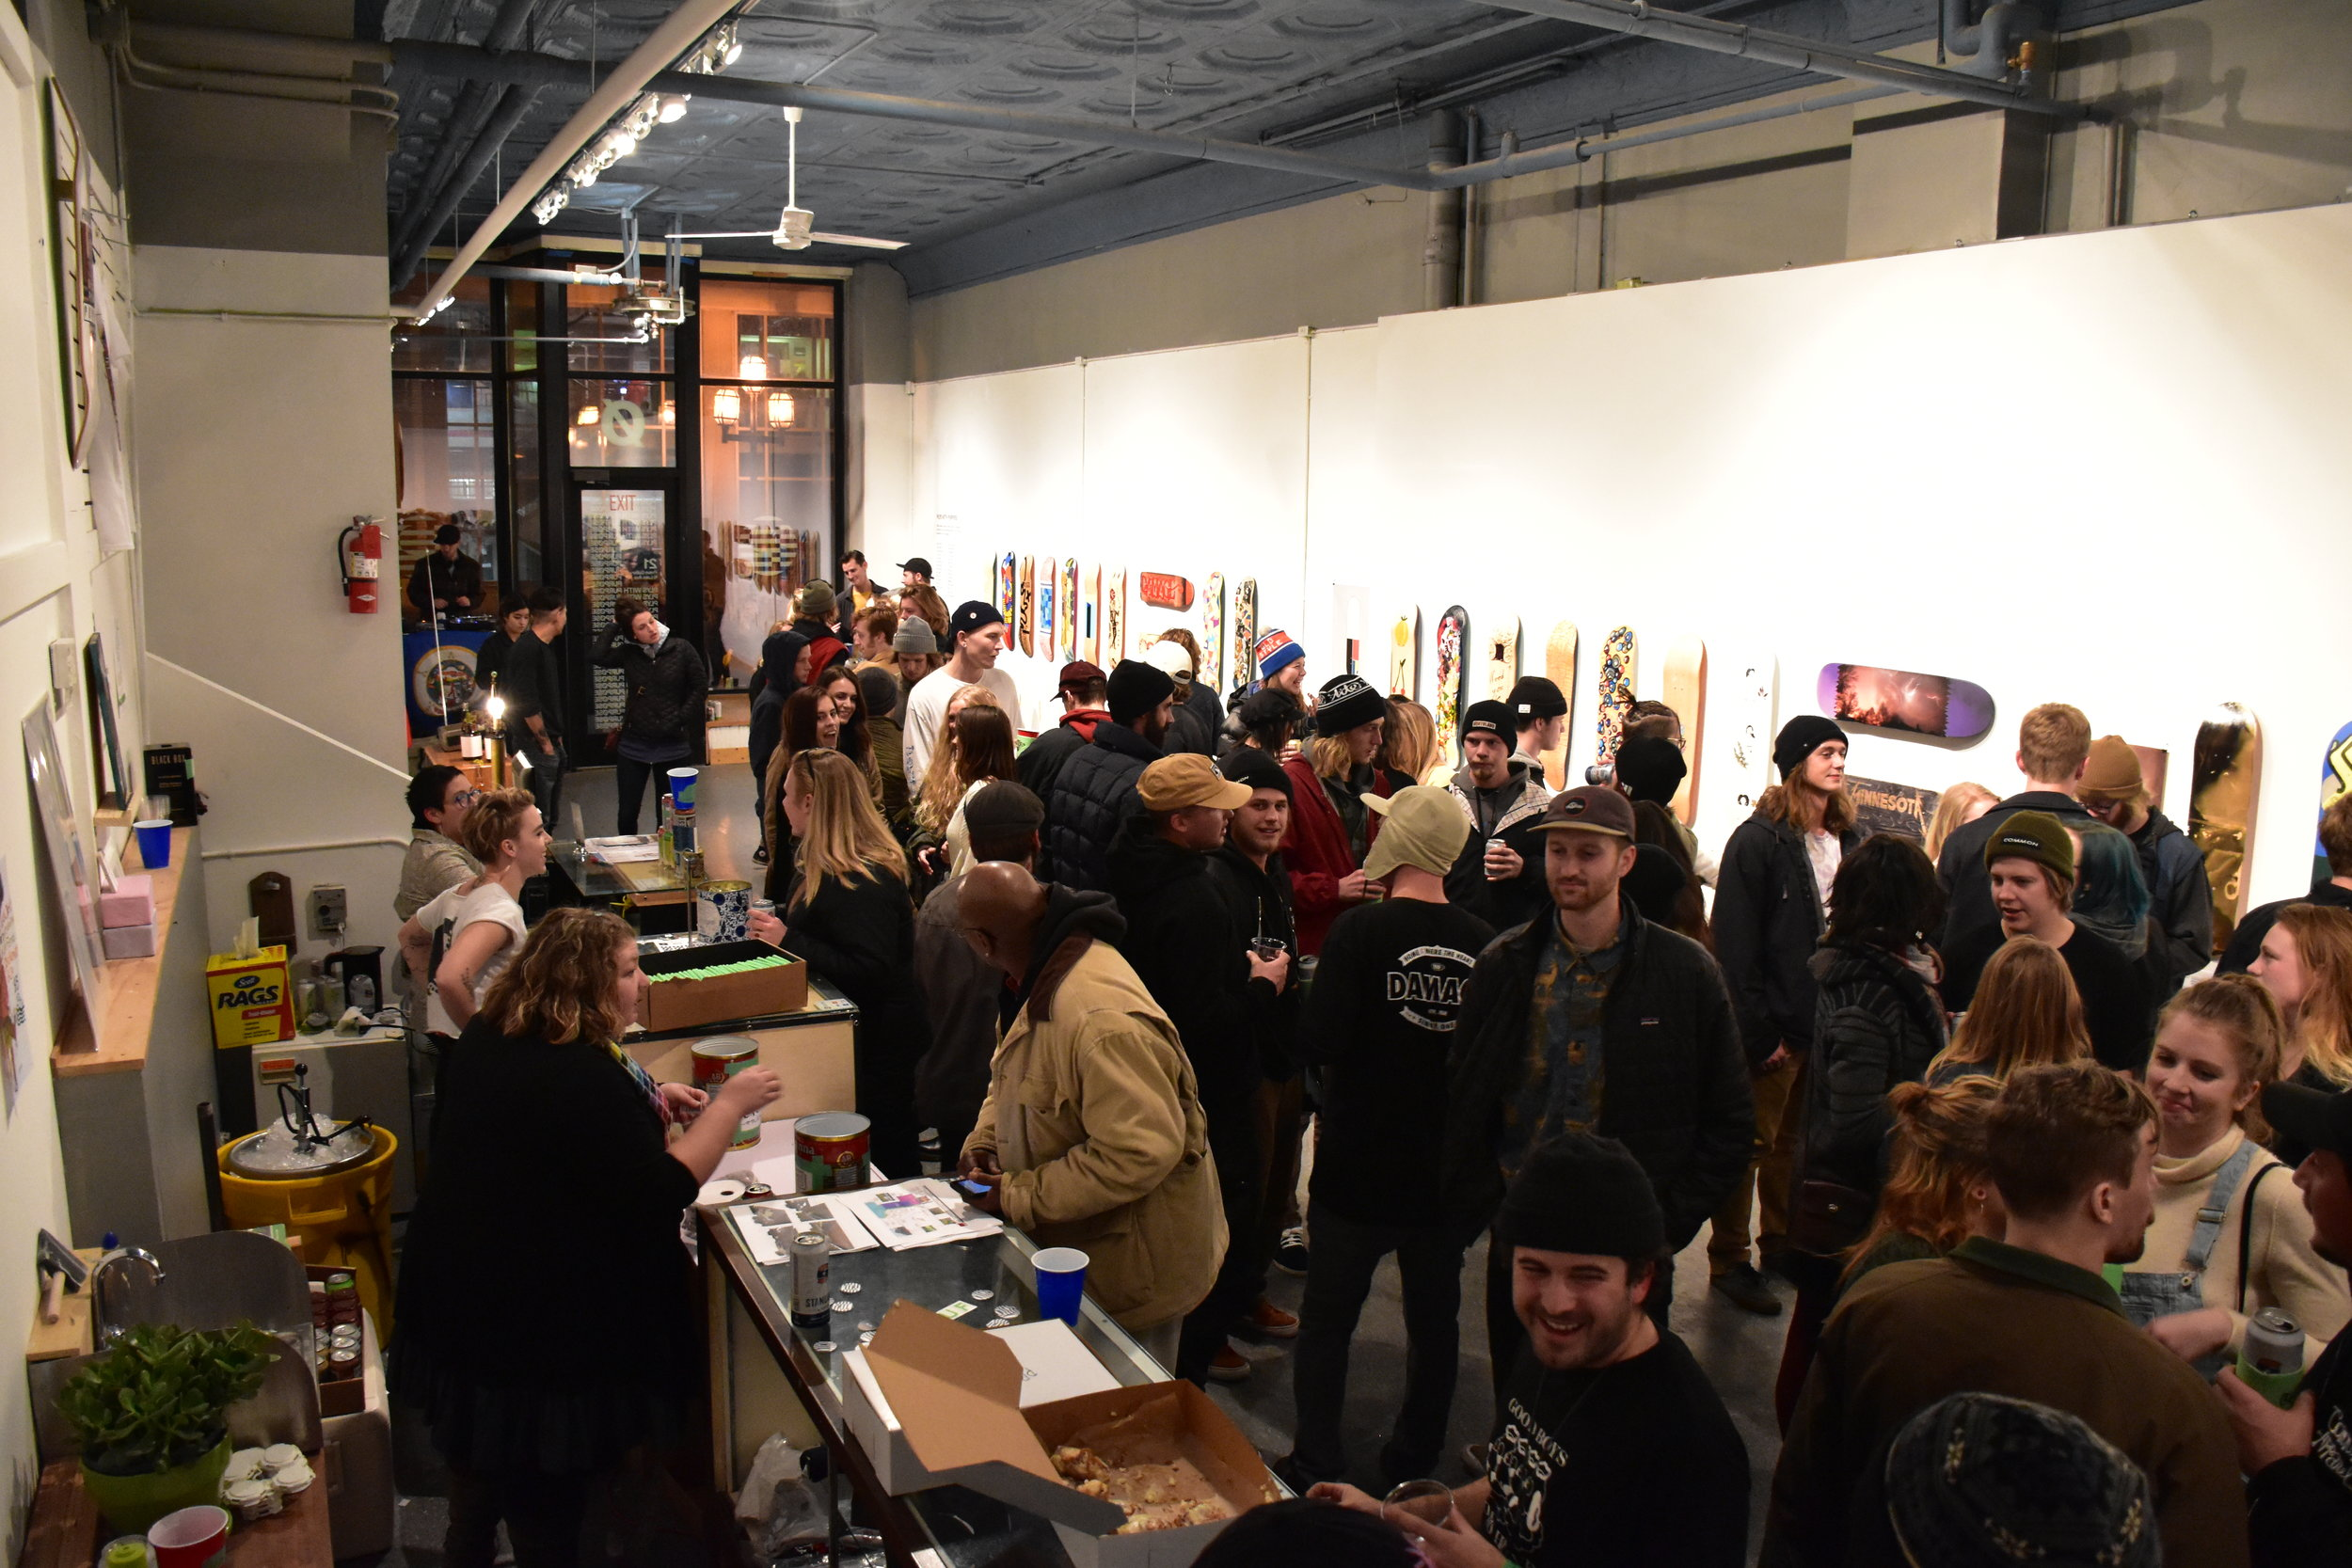 Opening night at The Prove Gallery  -Photo by Alex Ganeev